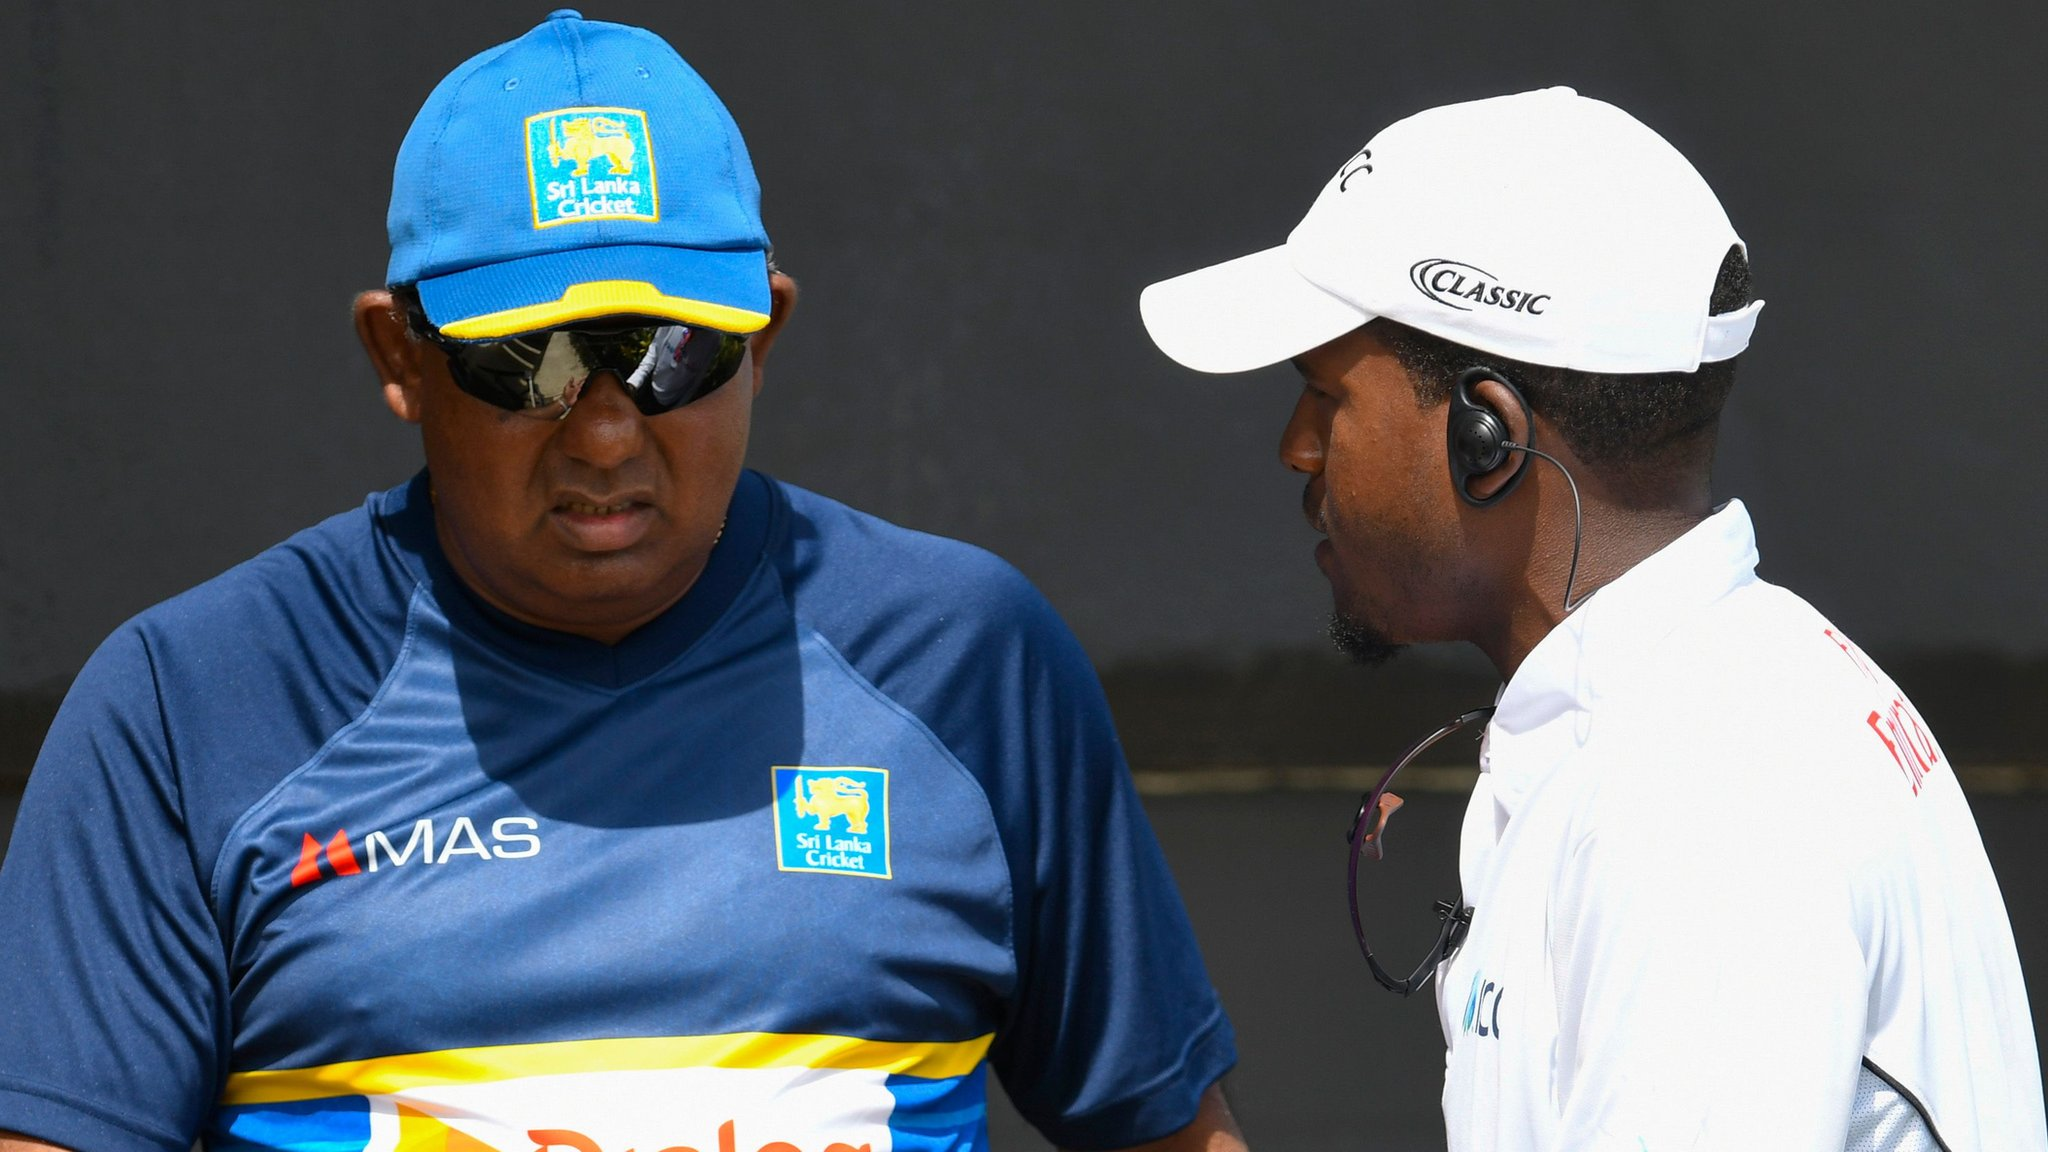 Sri Lanka trio admit 'serious law breach' over delay in play